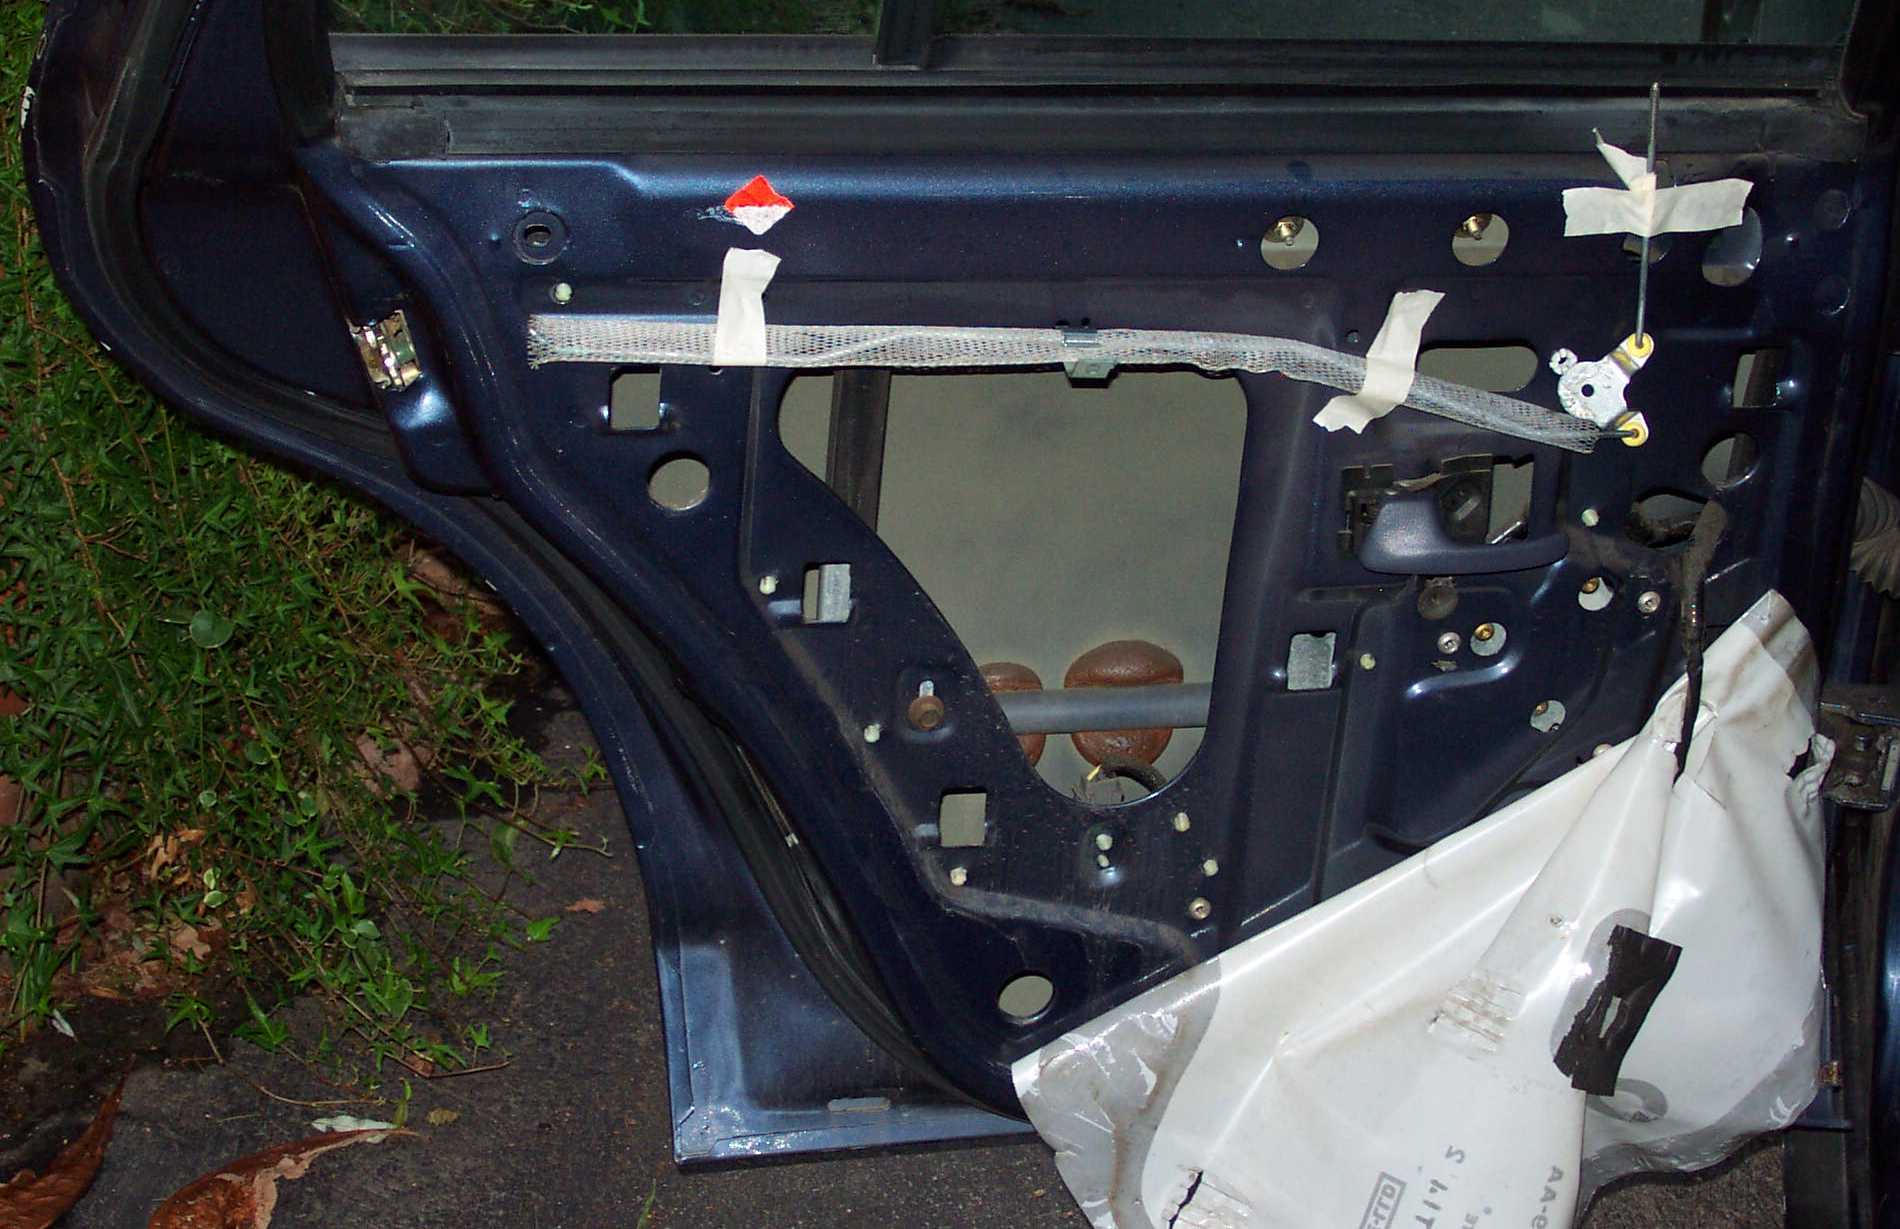 Same as the above picture but the interior door handle rod has been added to the picture